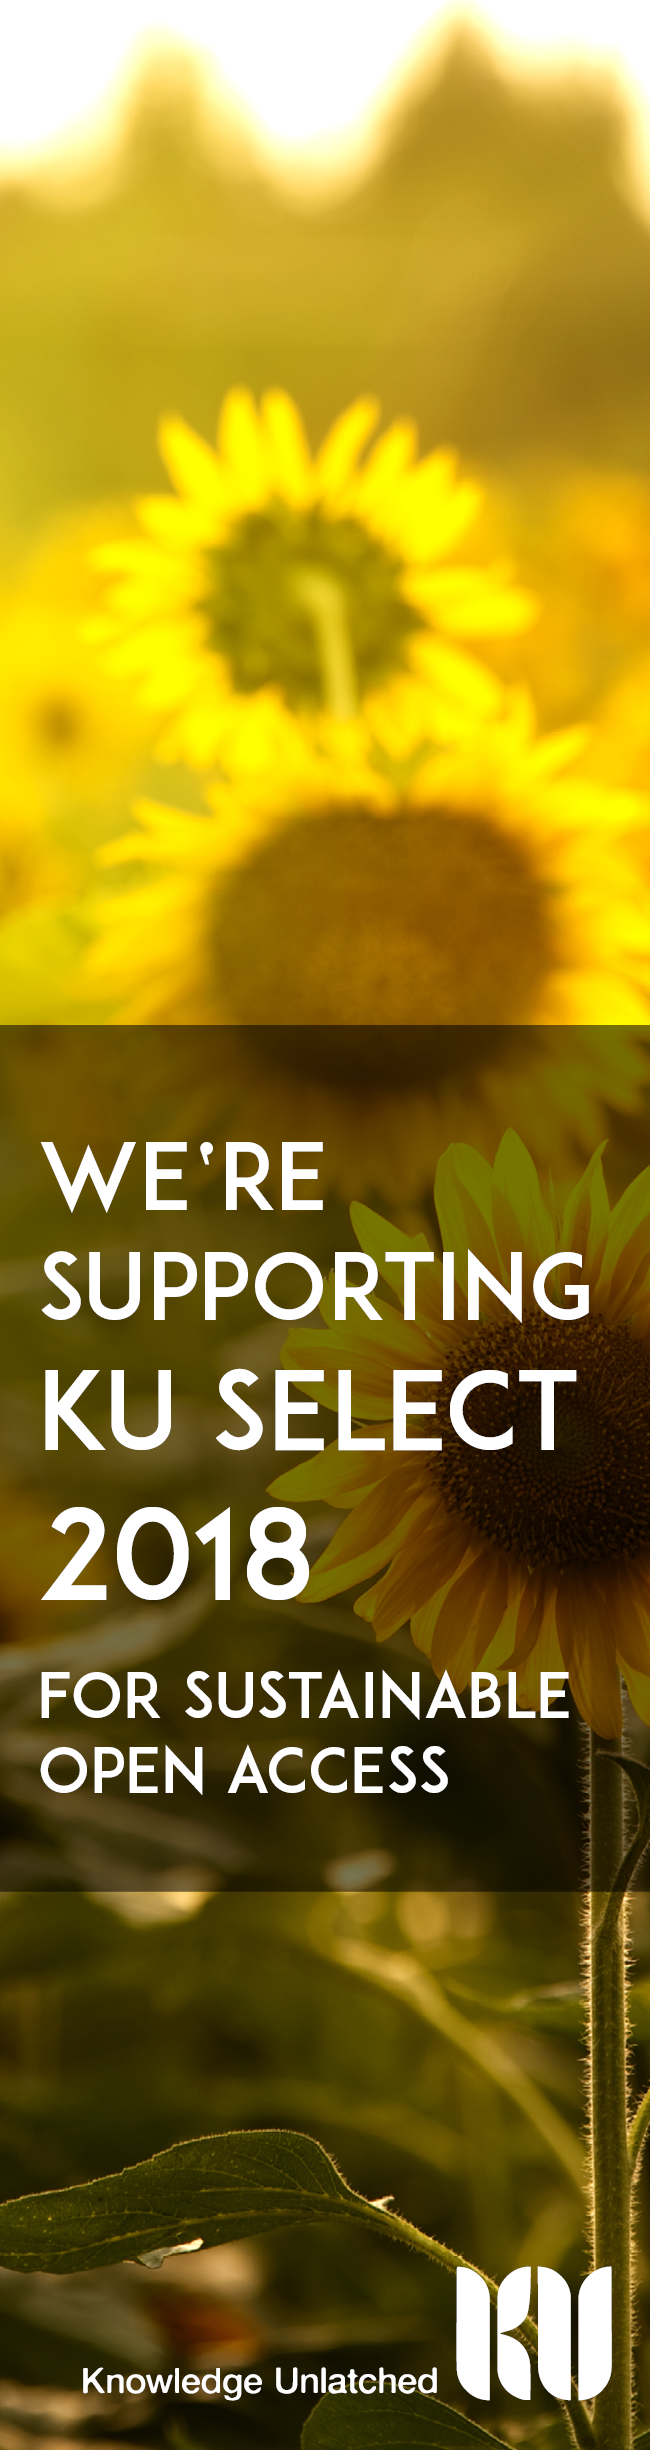 KU Support 2018 skyscraper